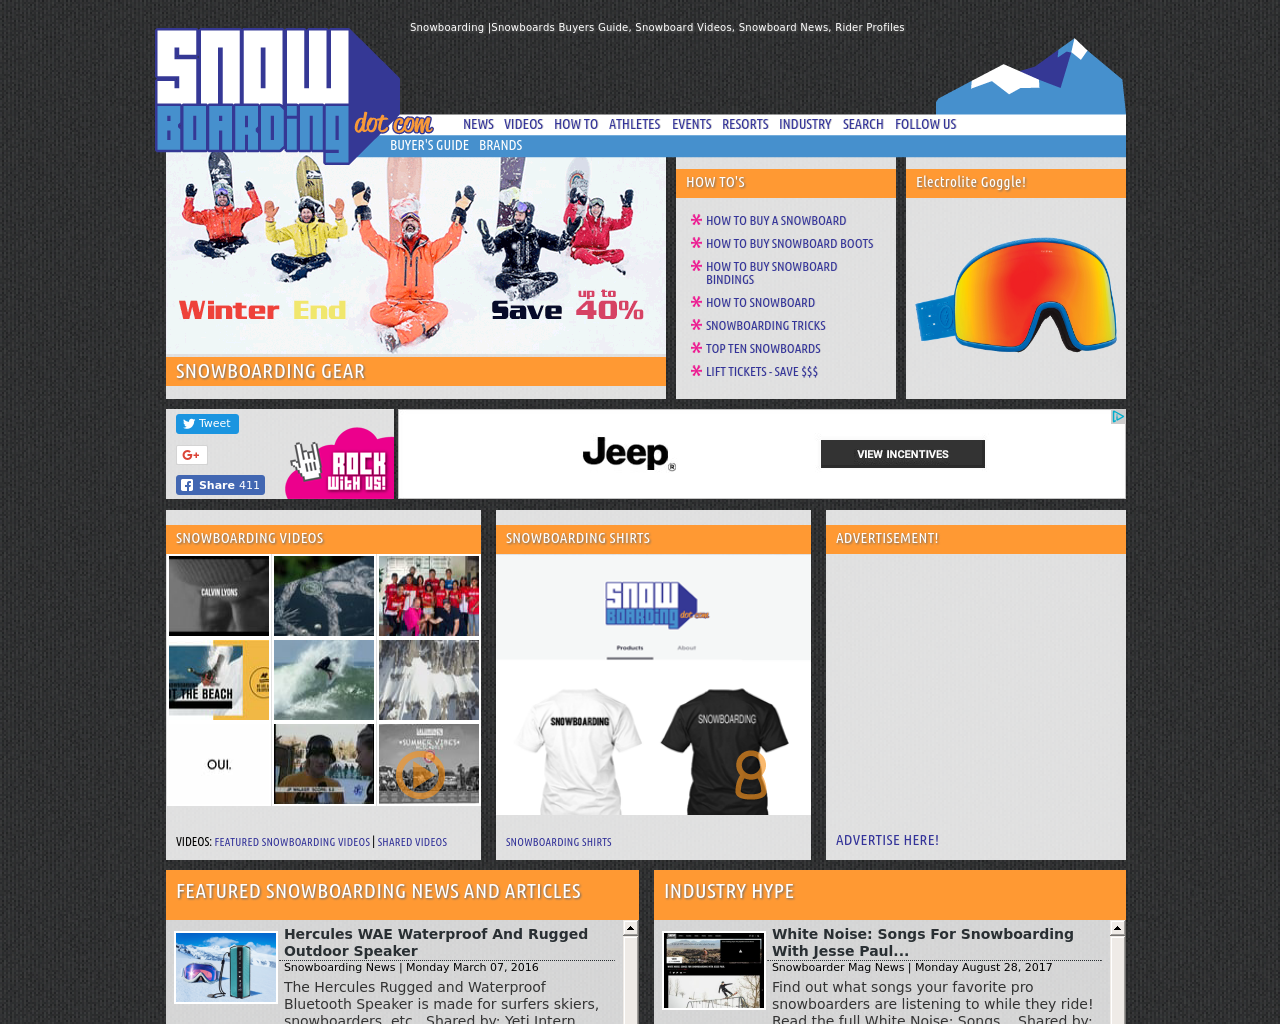 Snowboarding.com-Advertising-Reviews-Pricing